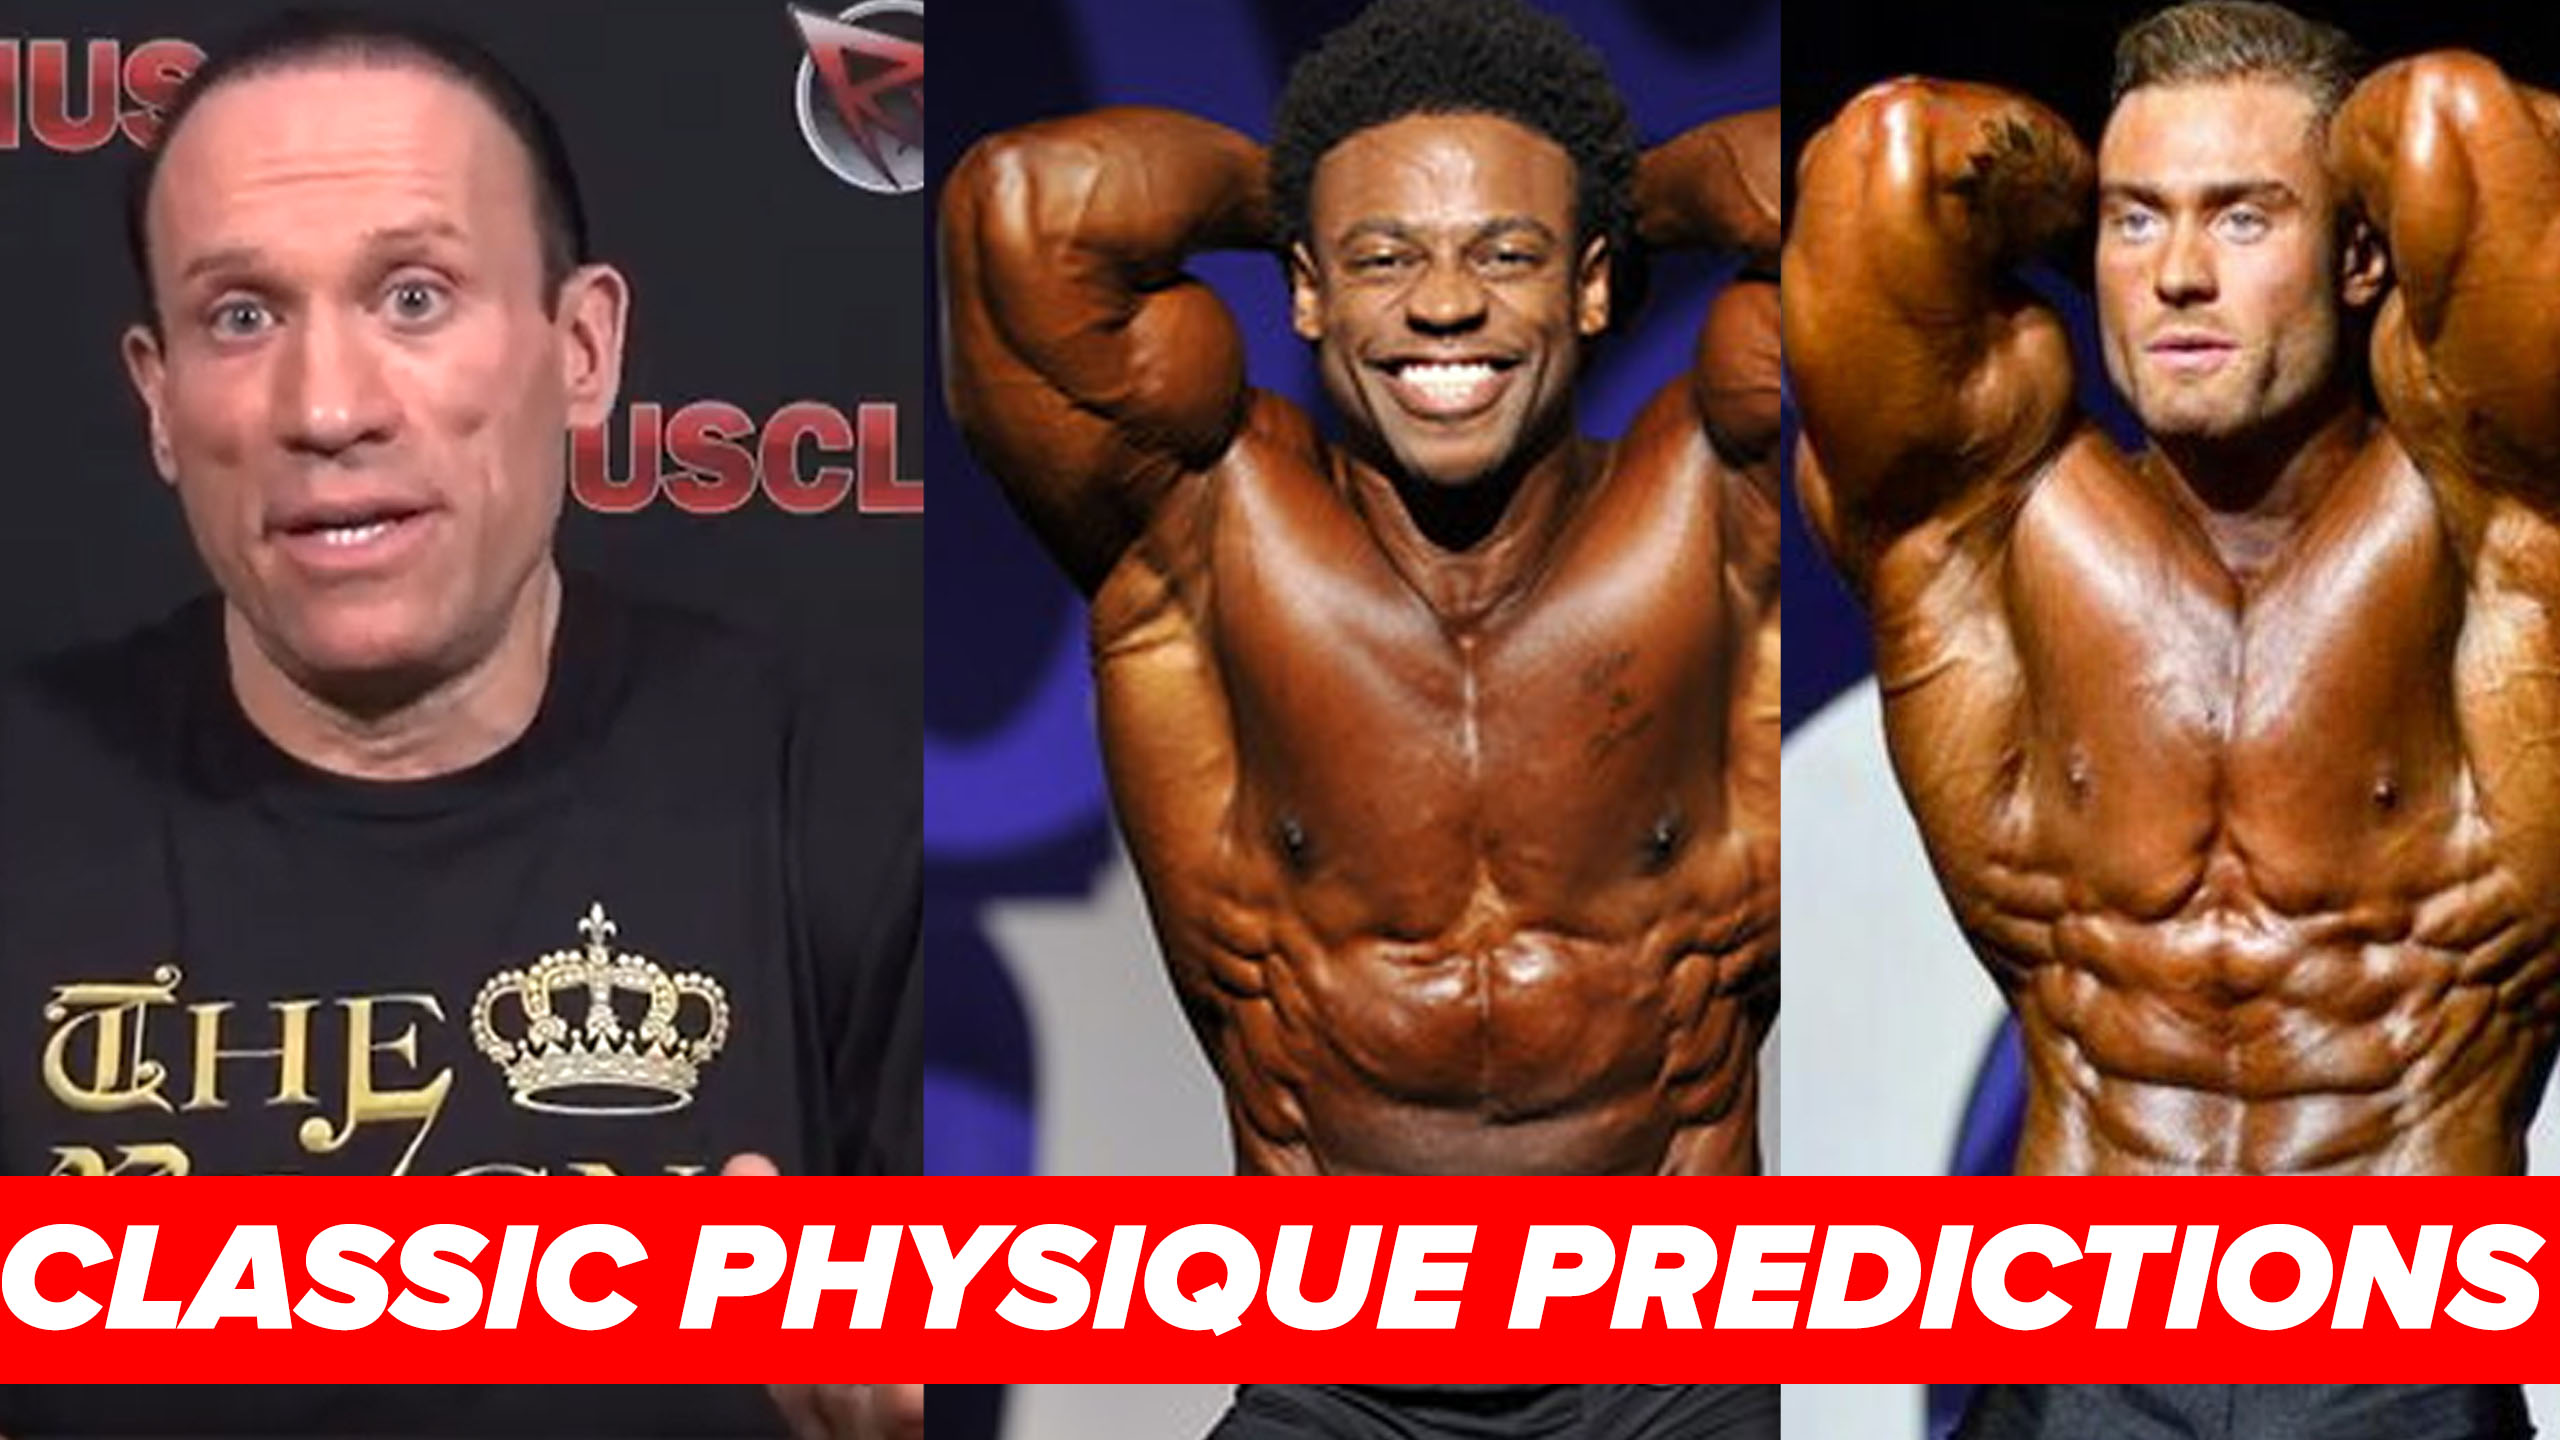 2018 classic physique olympia predictions